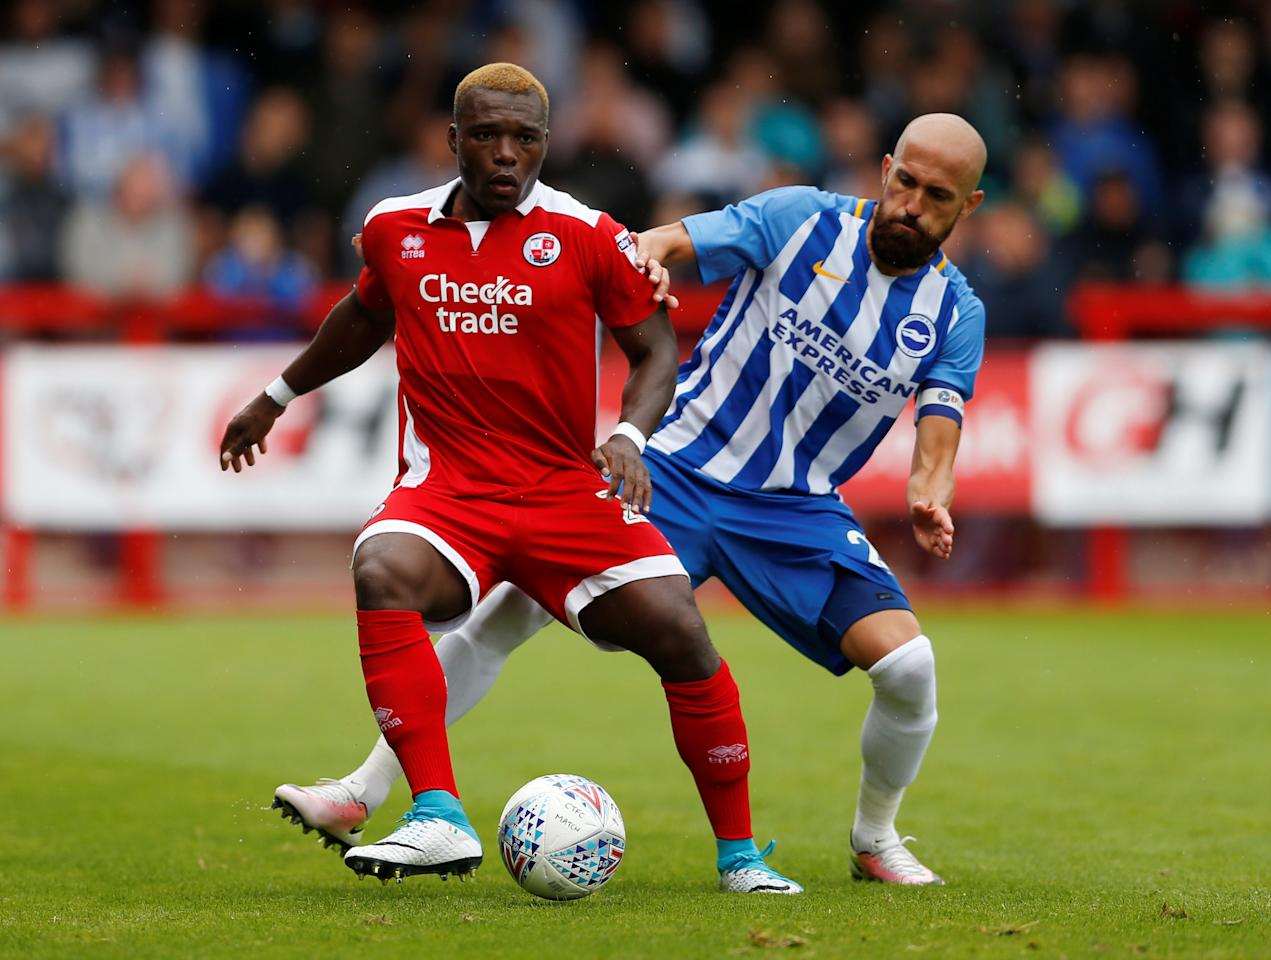 Soccer Football - Crawley Town vs Brighton & Hove Albion - Pre Season Friendly - June 22, 2017   Brighton & Hove Albion's Bruno in action with Crawley Town's Moussa Sanoh   Action Images via Reuters/Matthew Childs